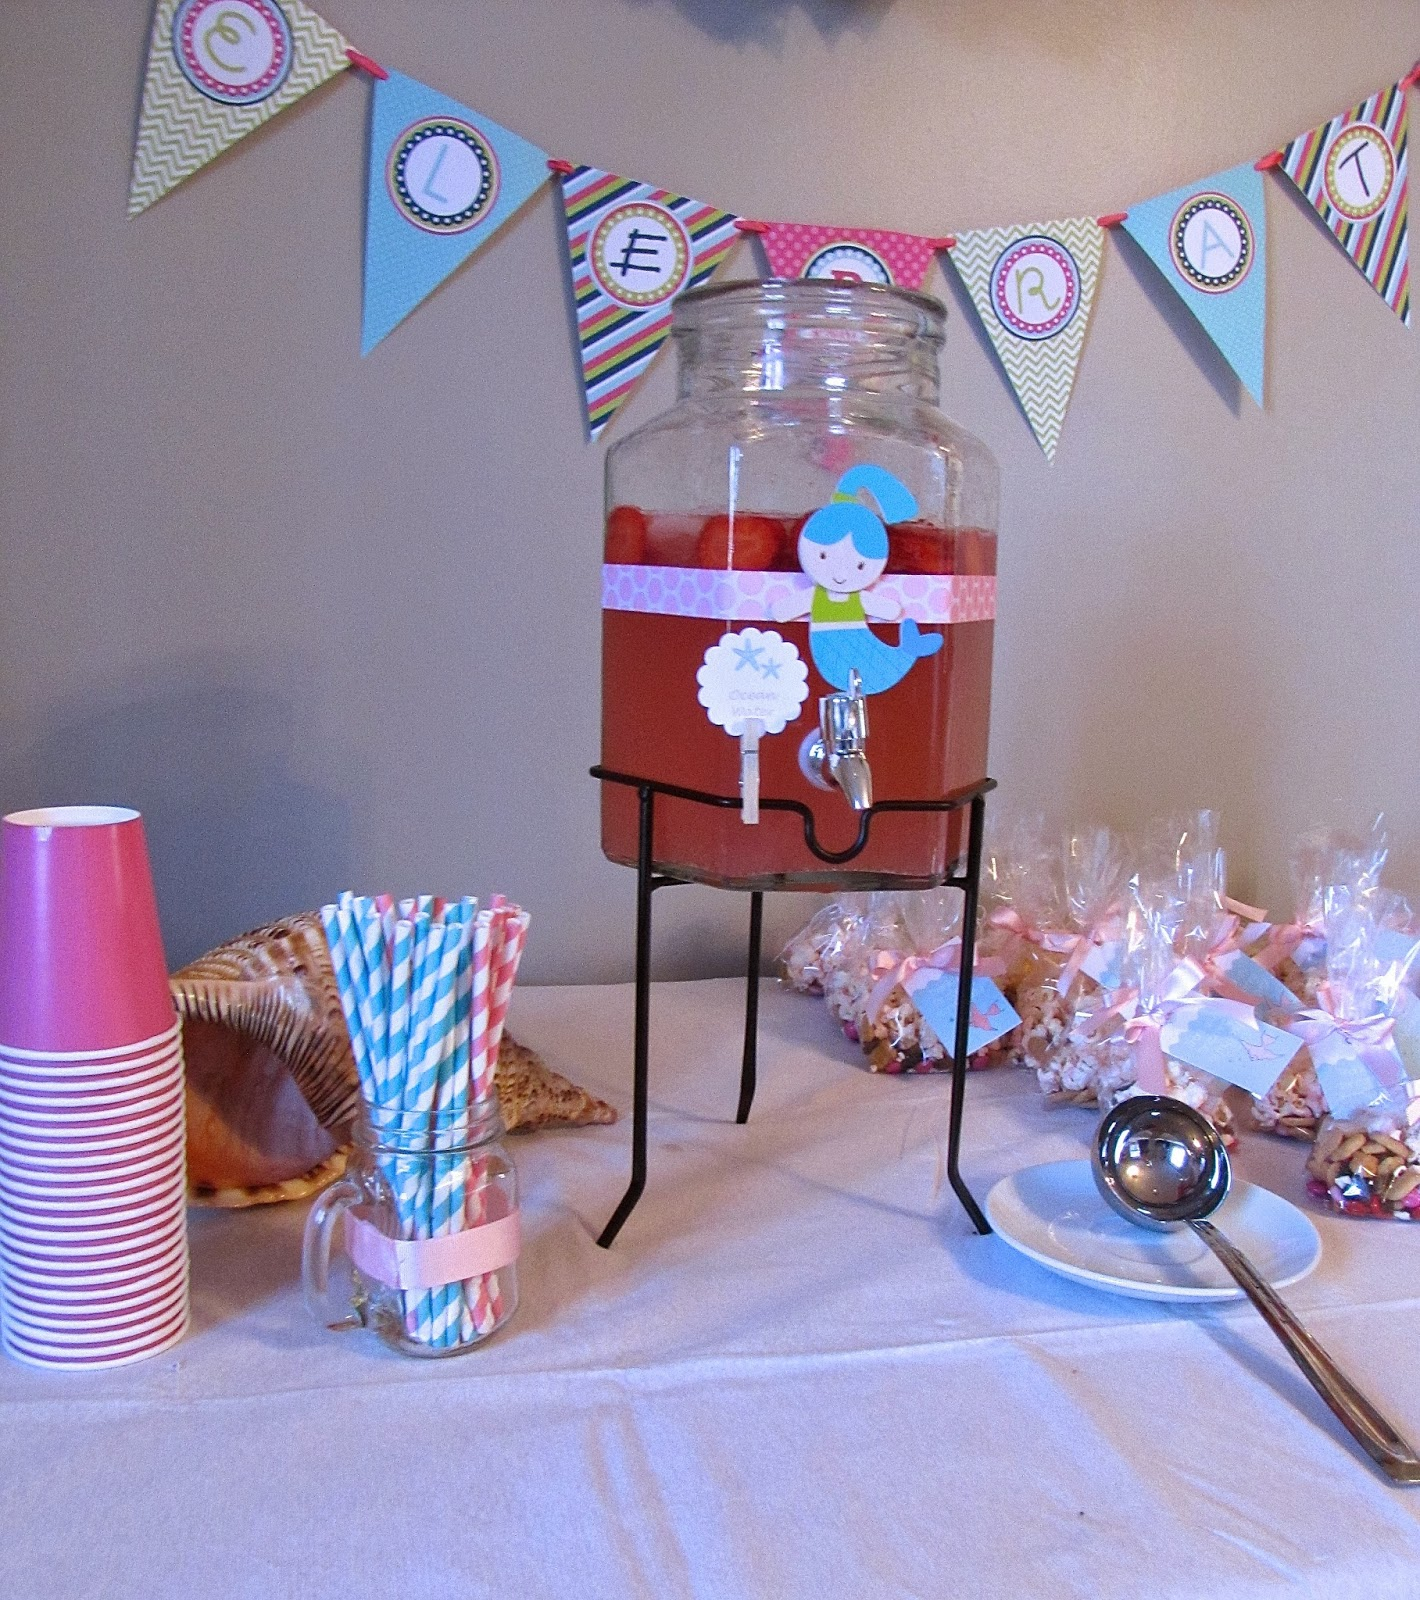 mermaid party decor ideas